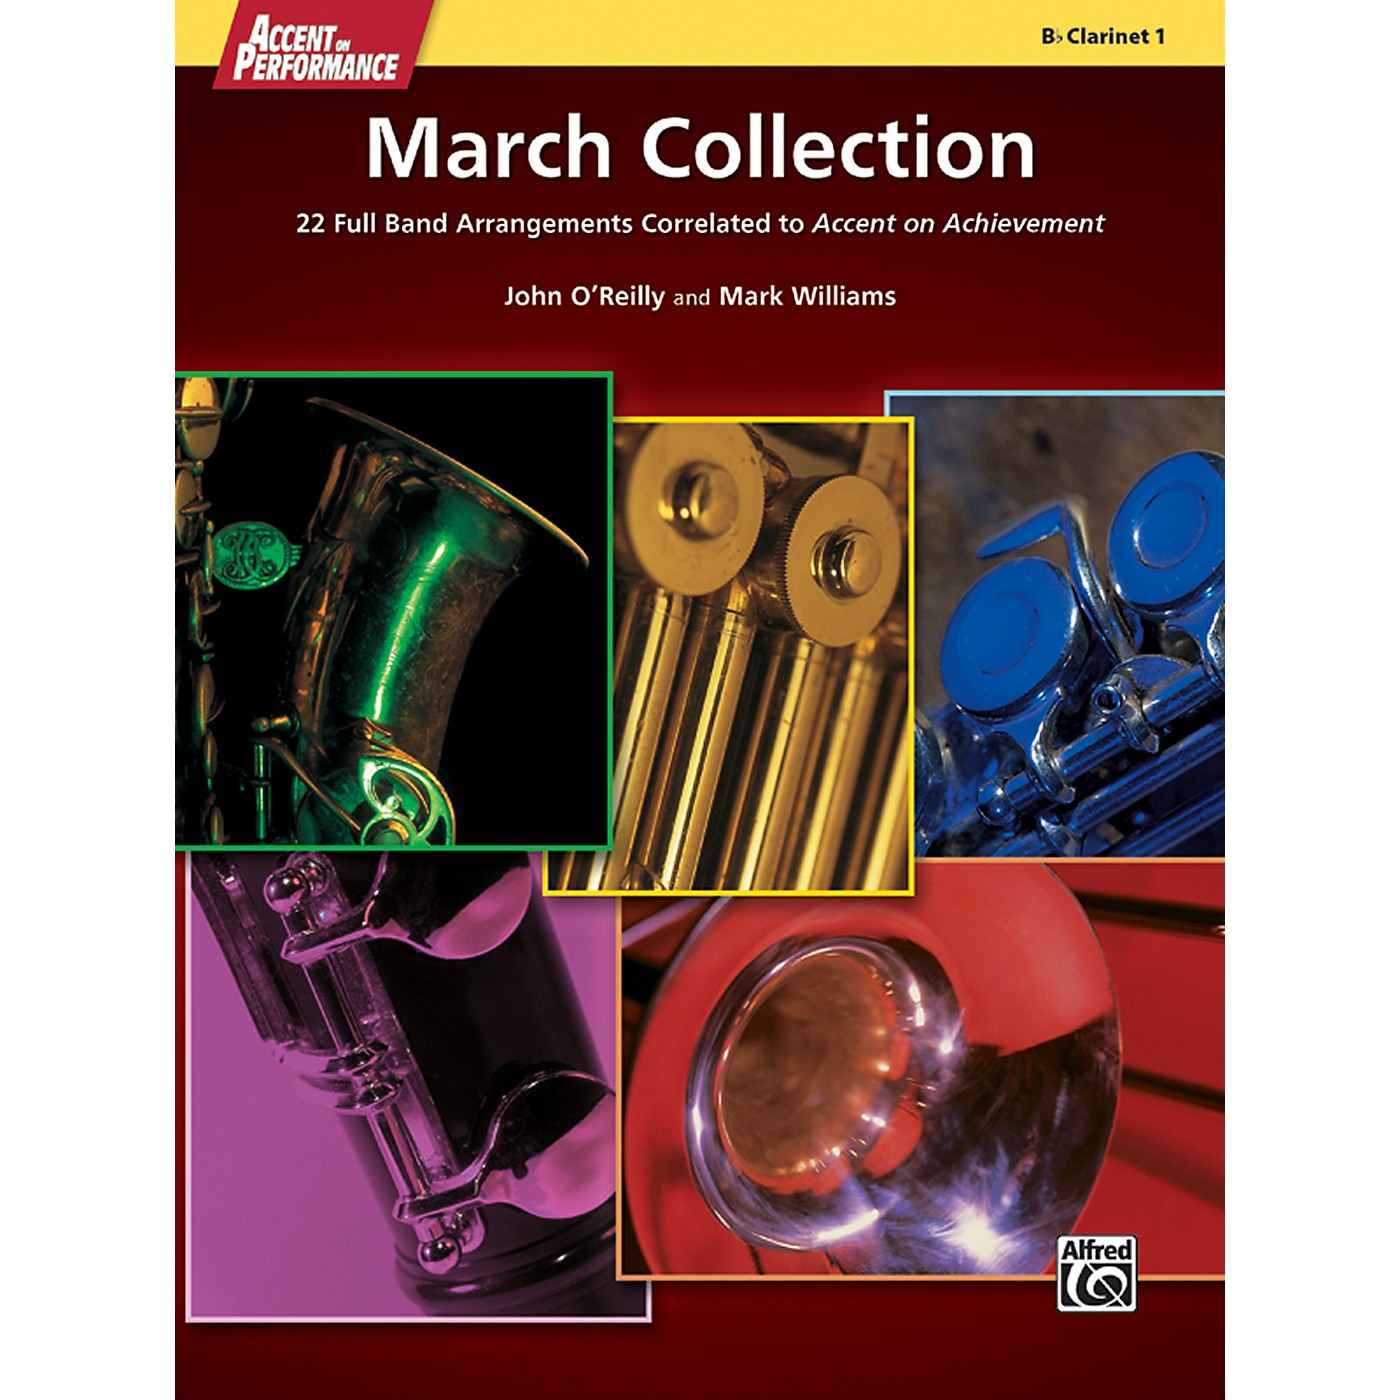 Alfred Accent on Performance March Collection Clarinet 1 Book thumbnail